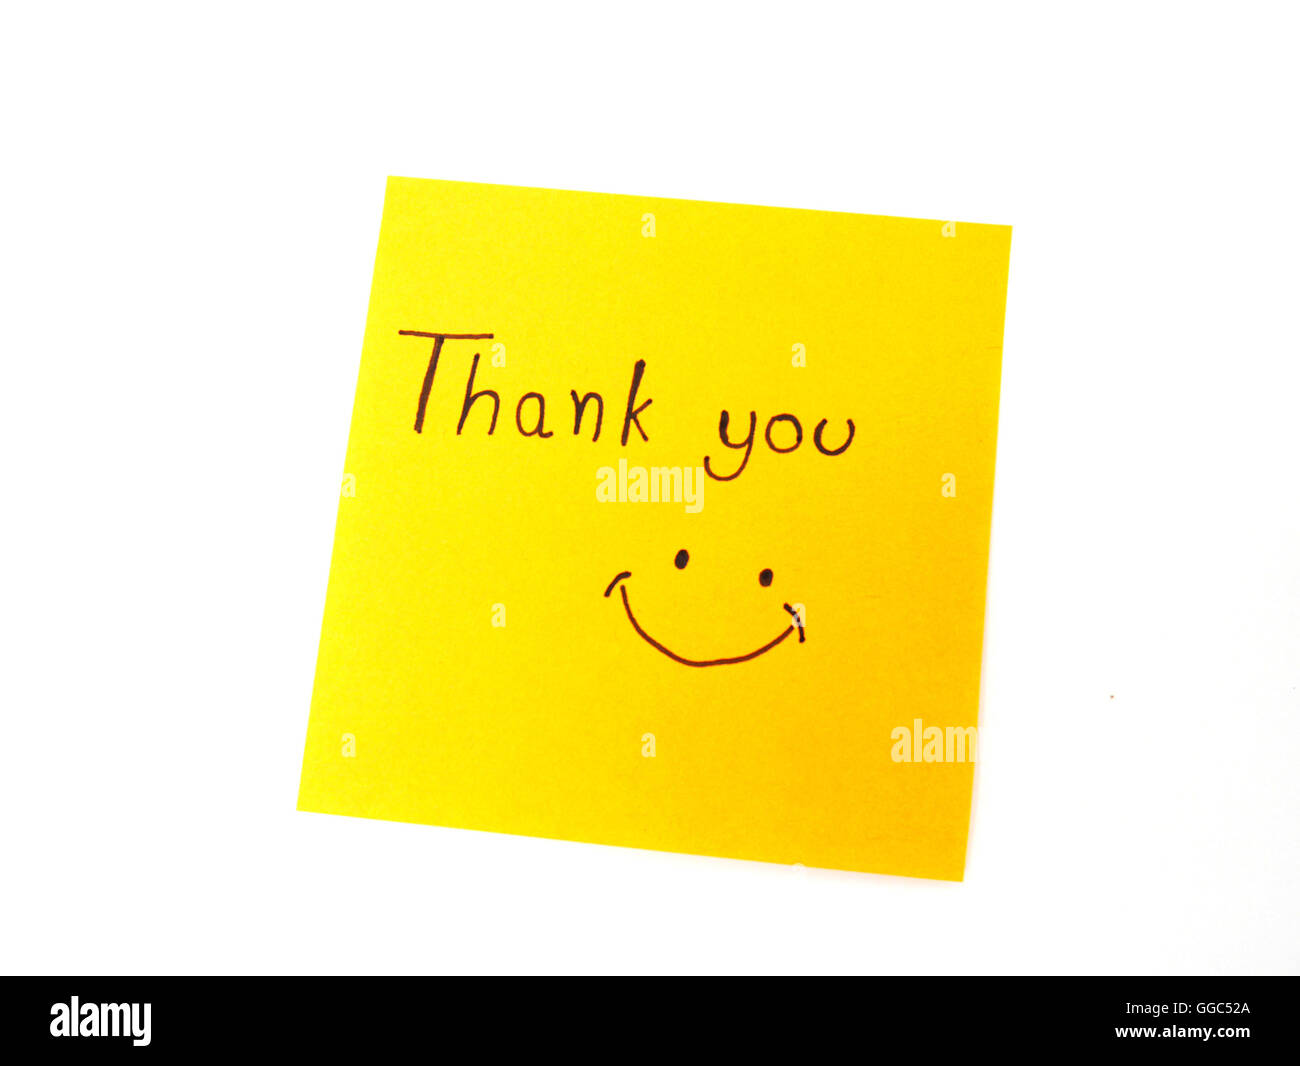 Writting 'Thank you' on post it note for someone - Stock Image